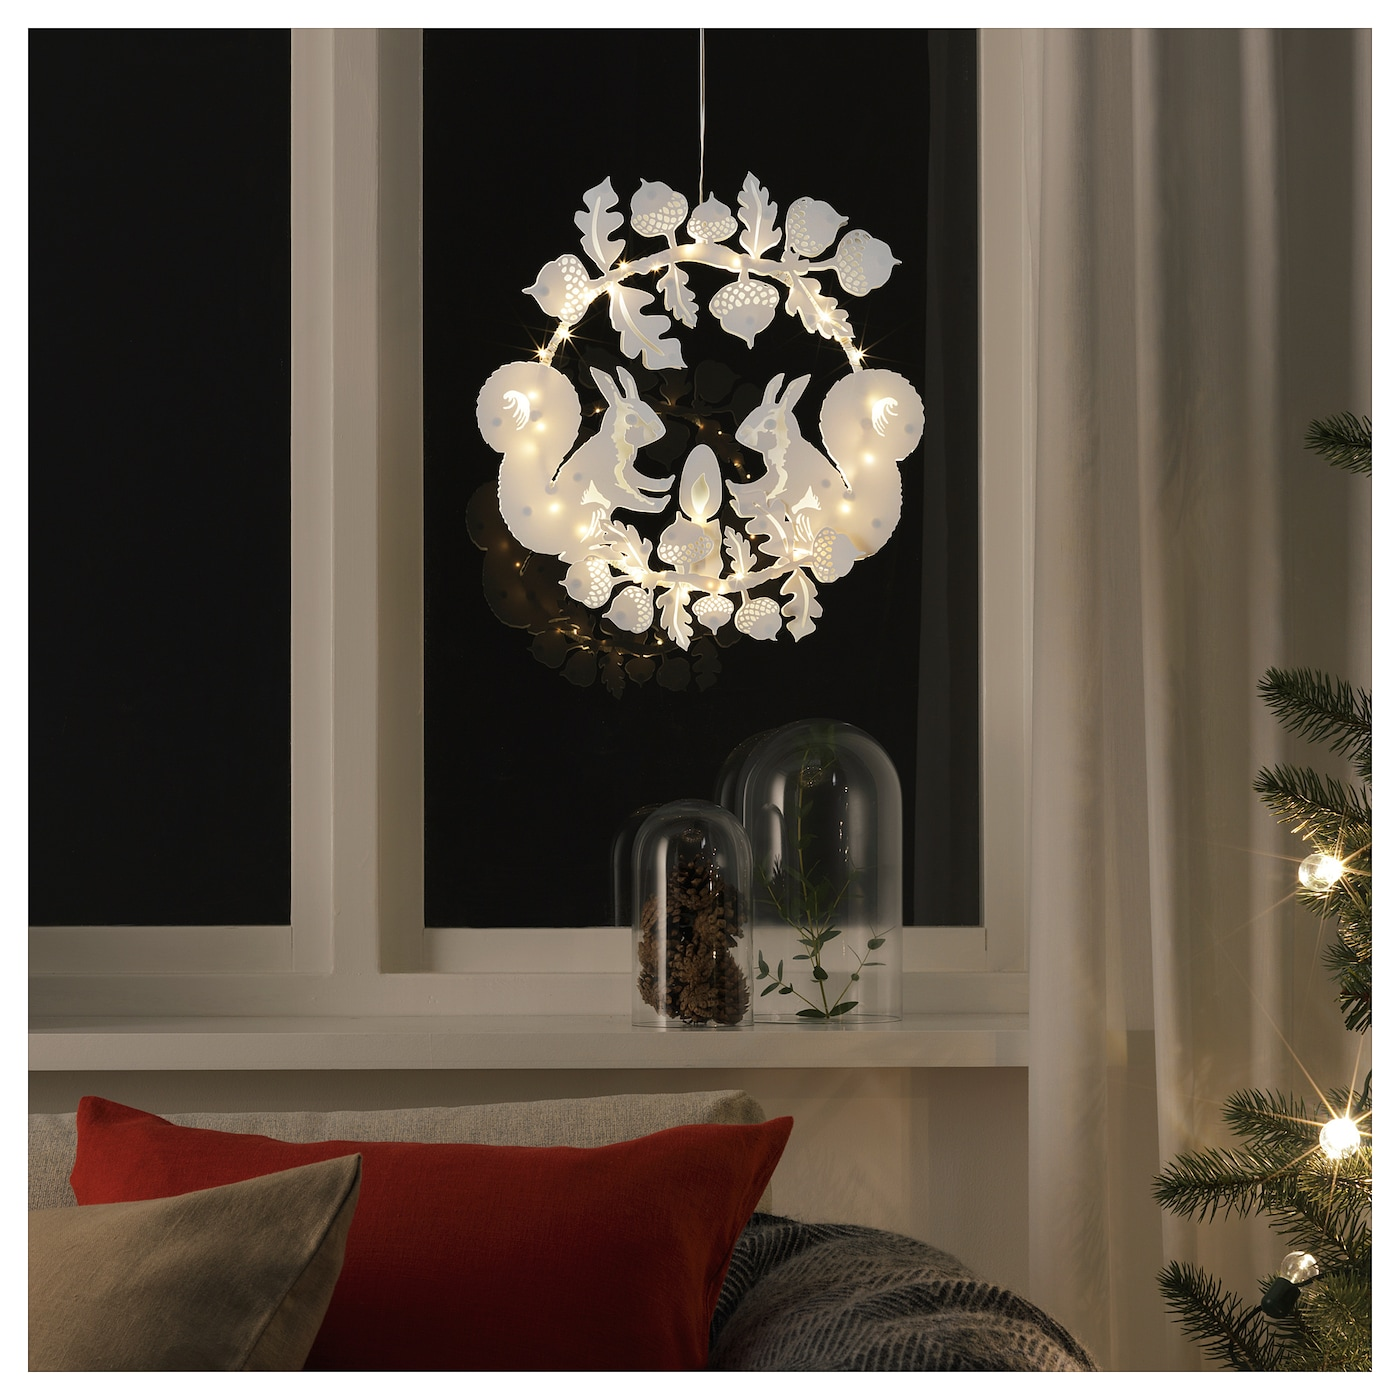 Ikea StrÅla Led Wall Pendant Lamp